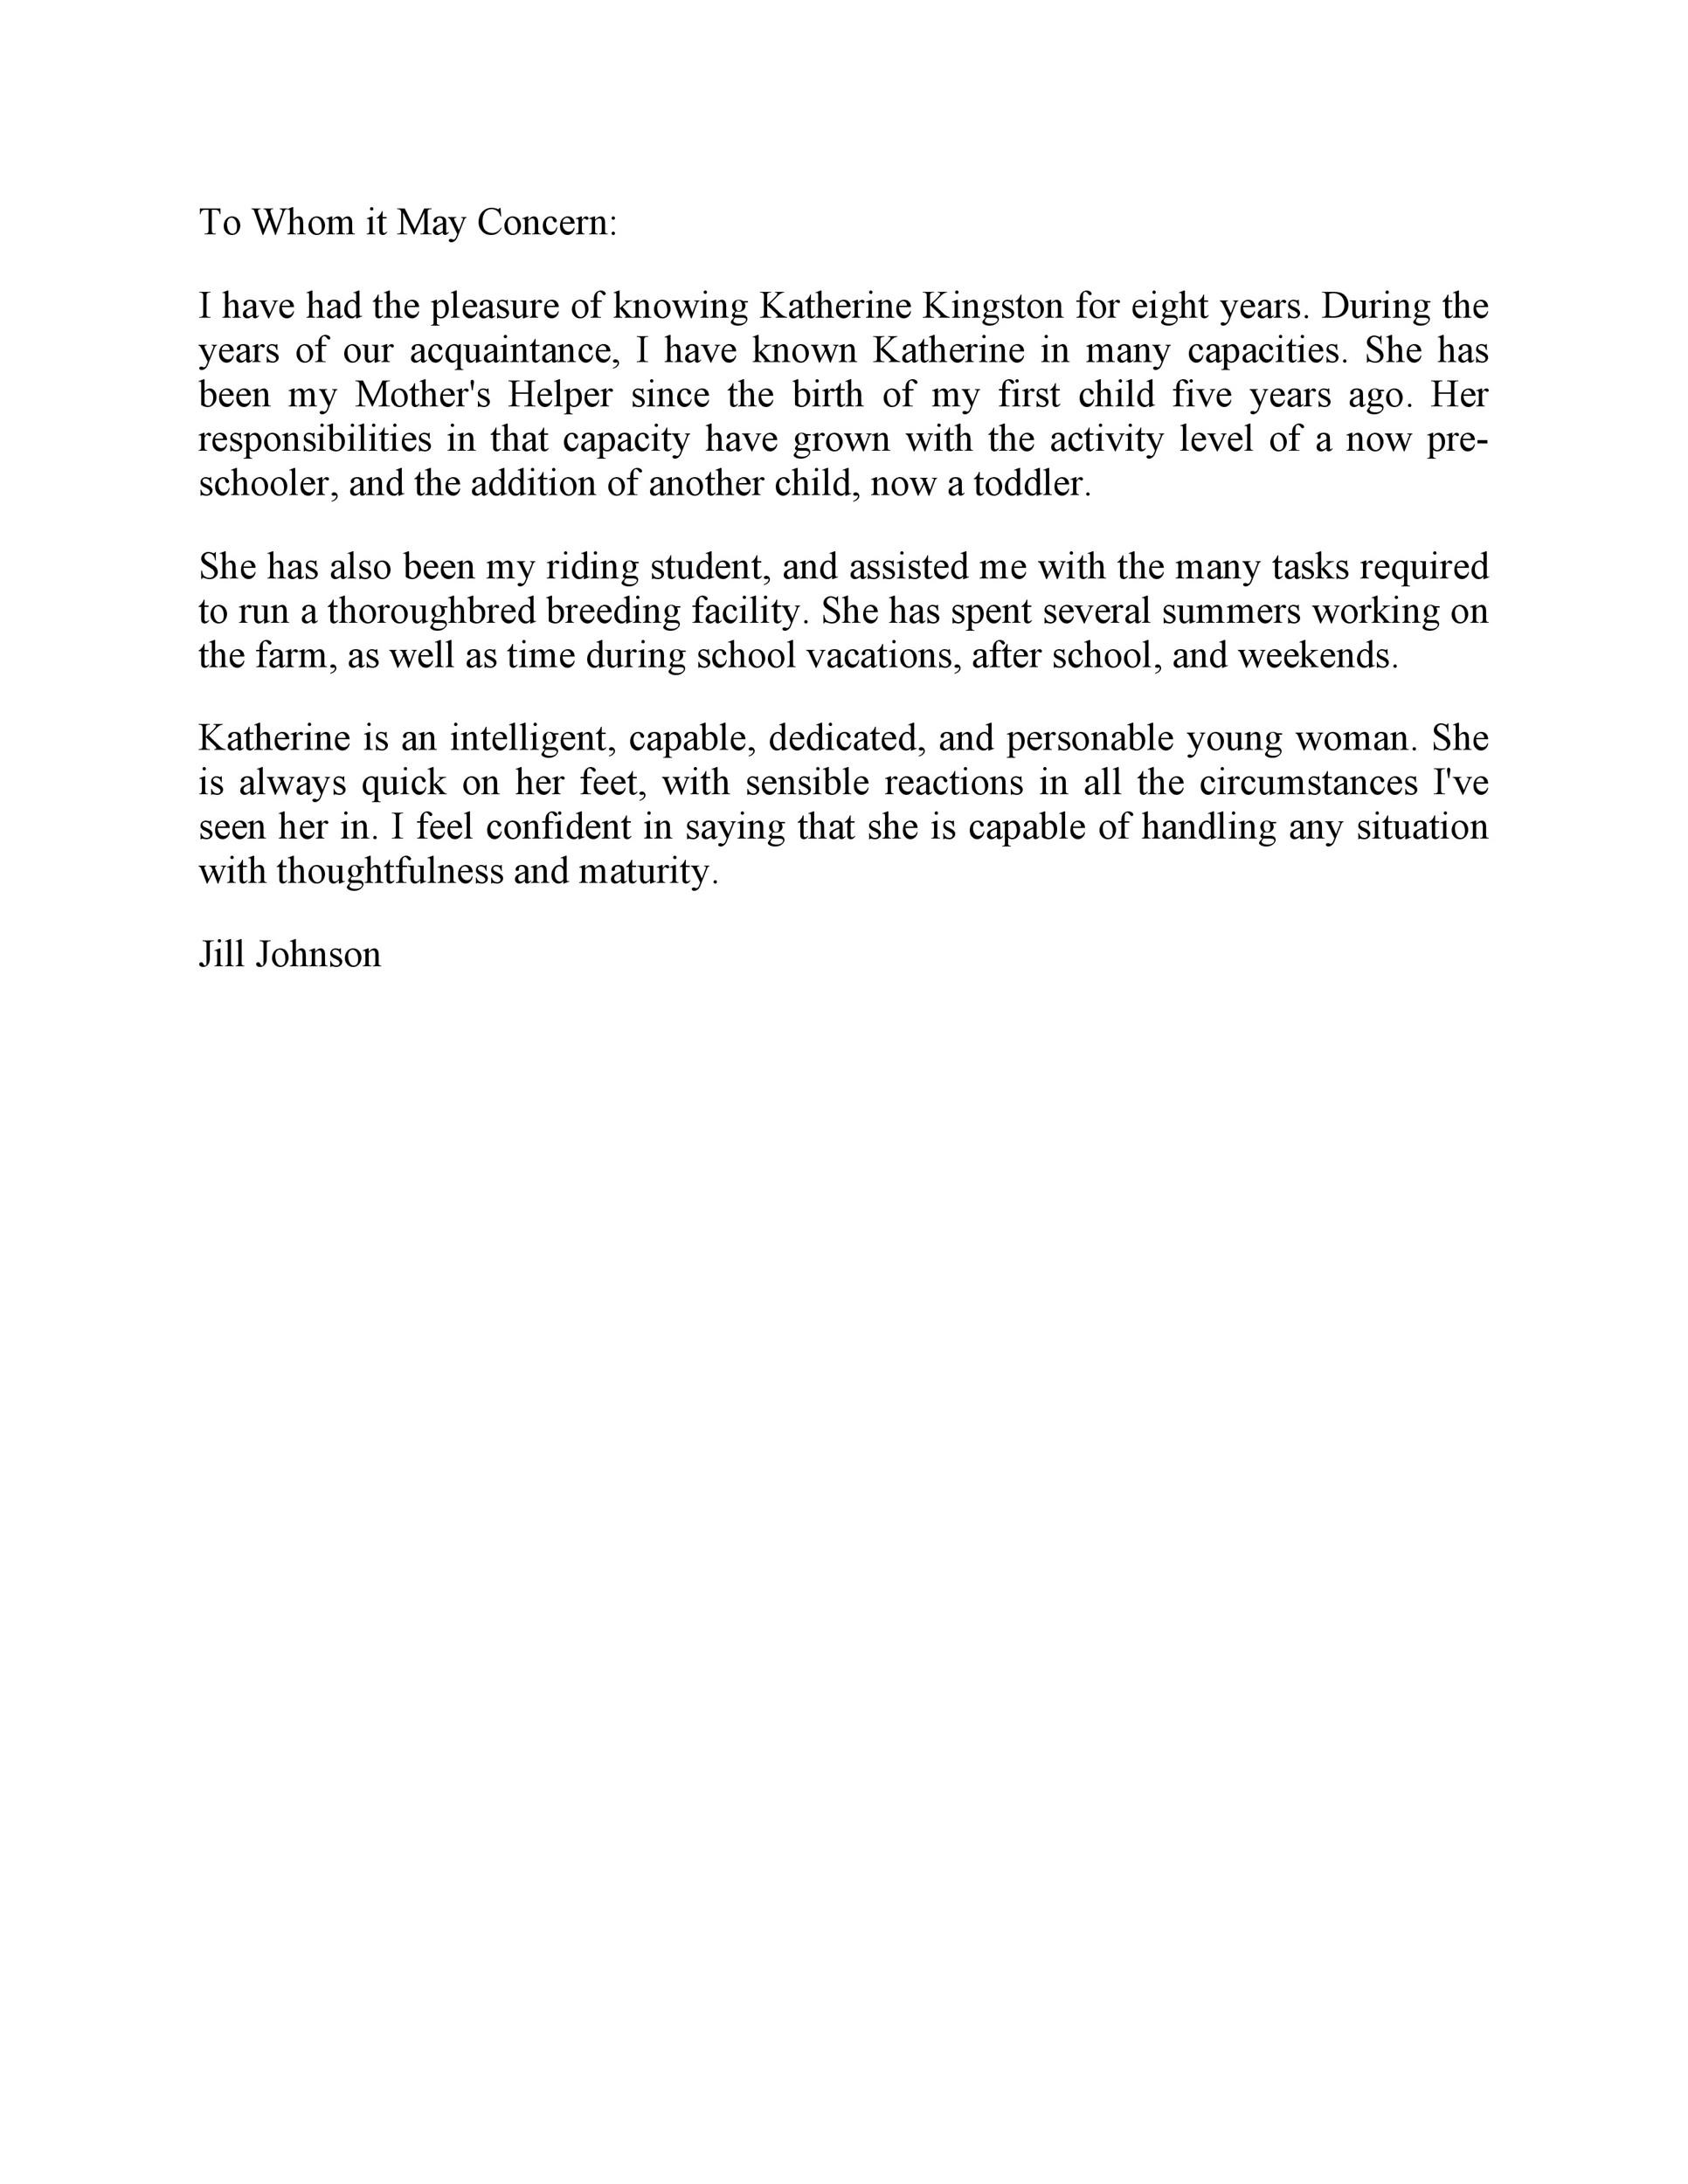 Free Recommendation Letter From Manager Template 23